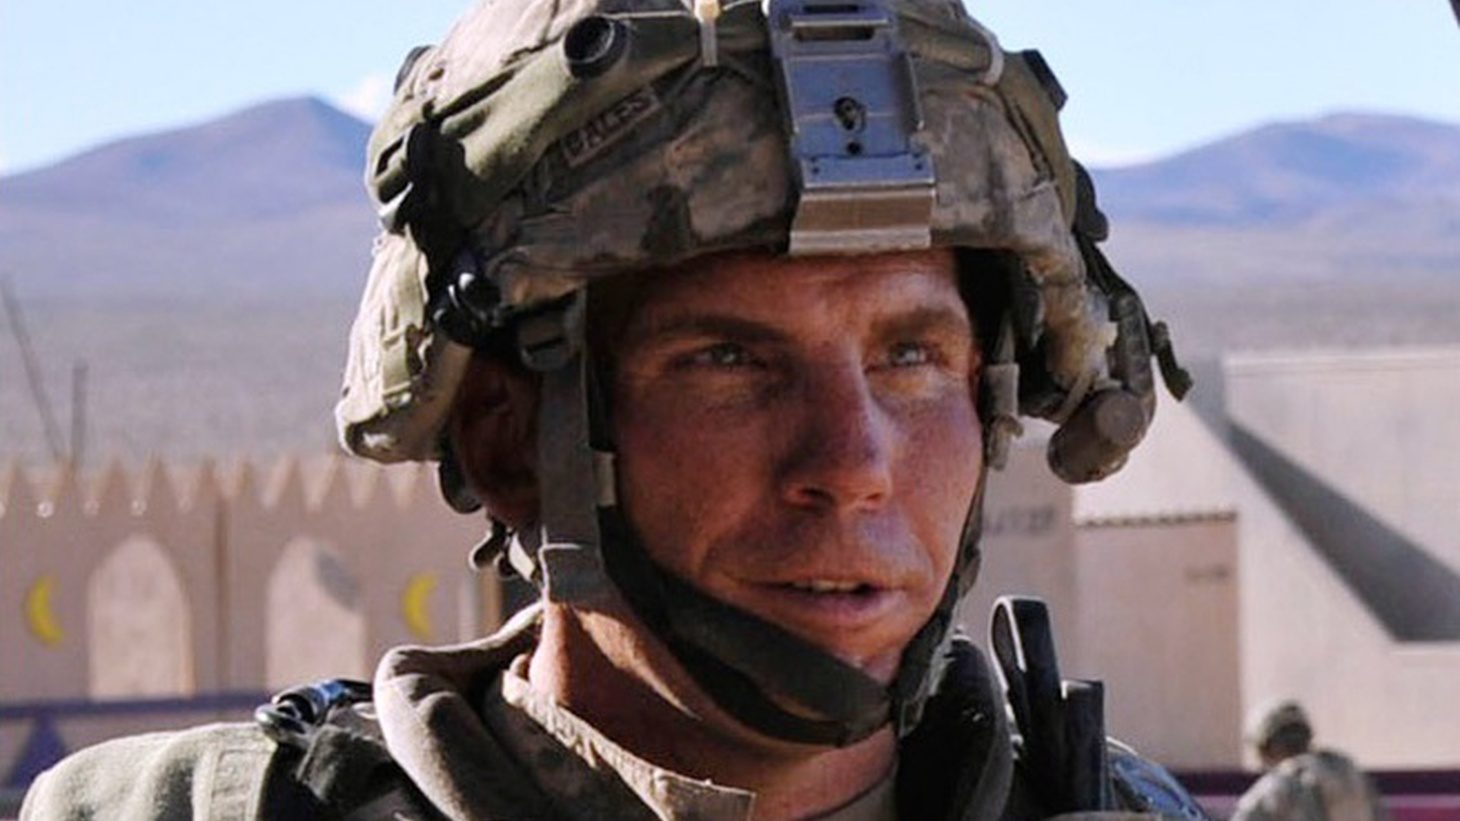 One of the most shocking moments of the war in Afghanistan came three years ago when American soldier Robert Bales murdered 16 Afghan men, women and children. For the first time,  Bales has opened up  about what happened that night.     US Army soldier Robert Bales United States Army photograph by Specialist Ryan Hallock (28th Public Affairs)